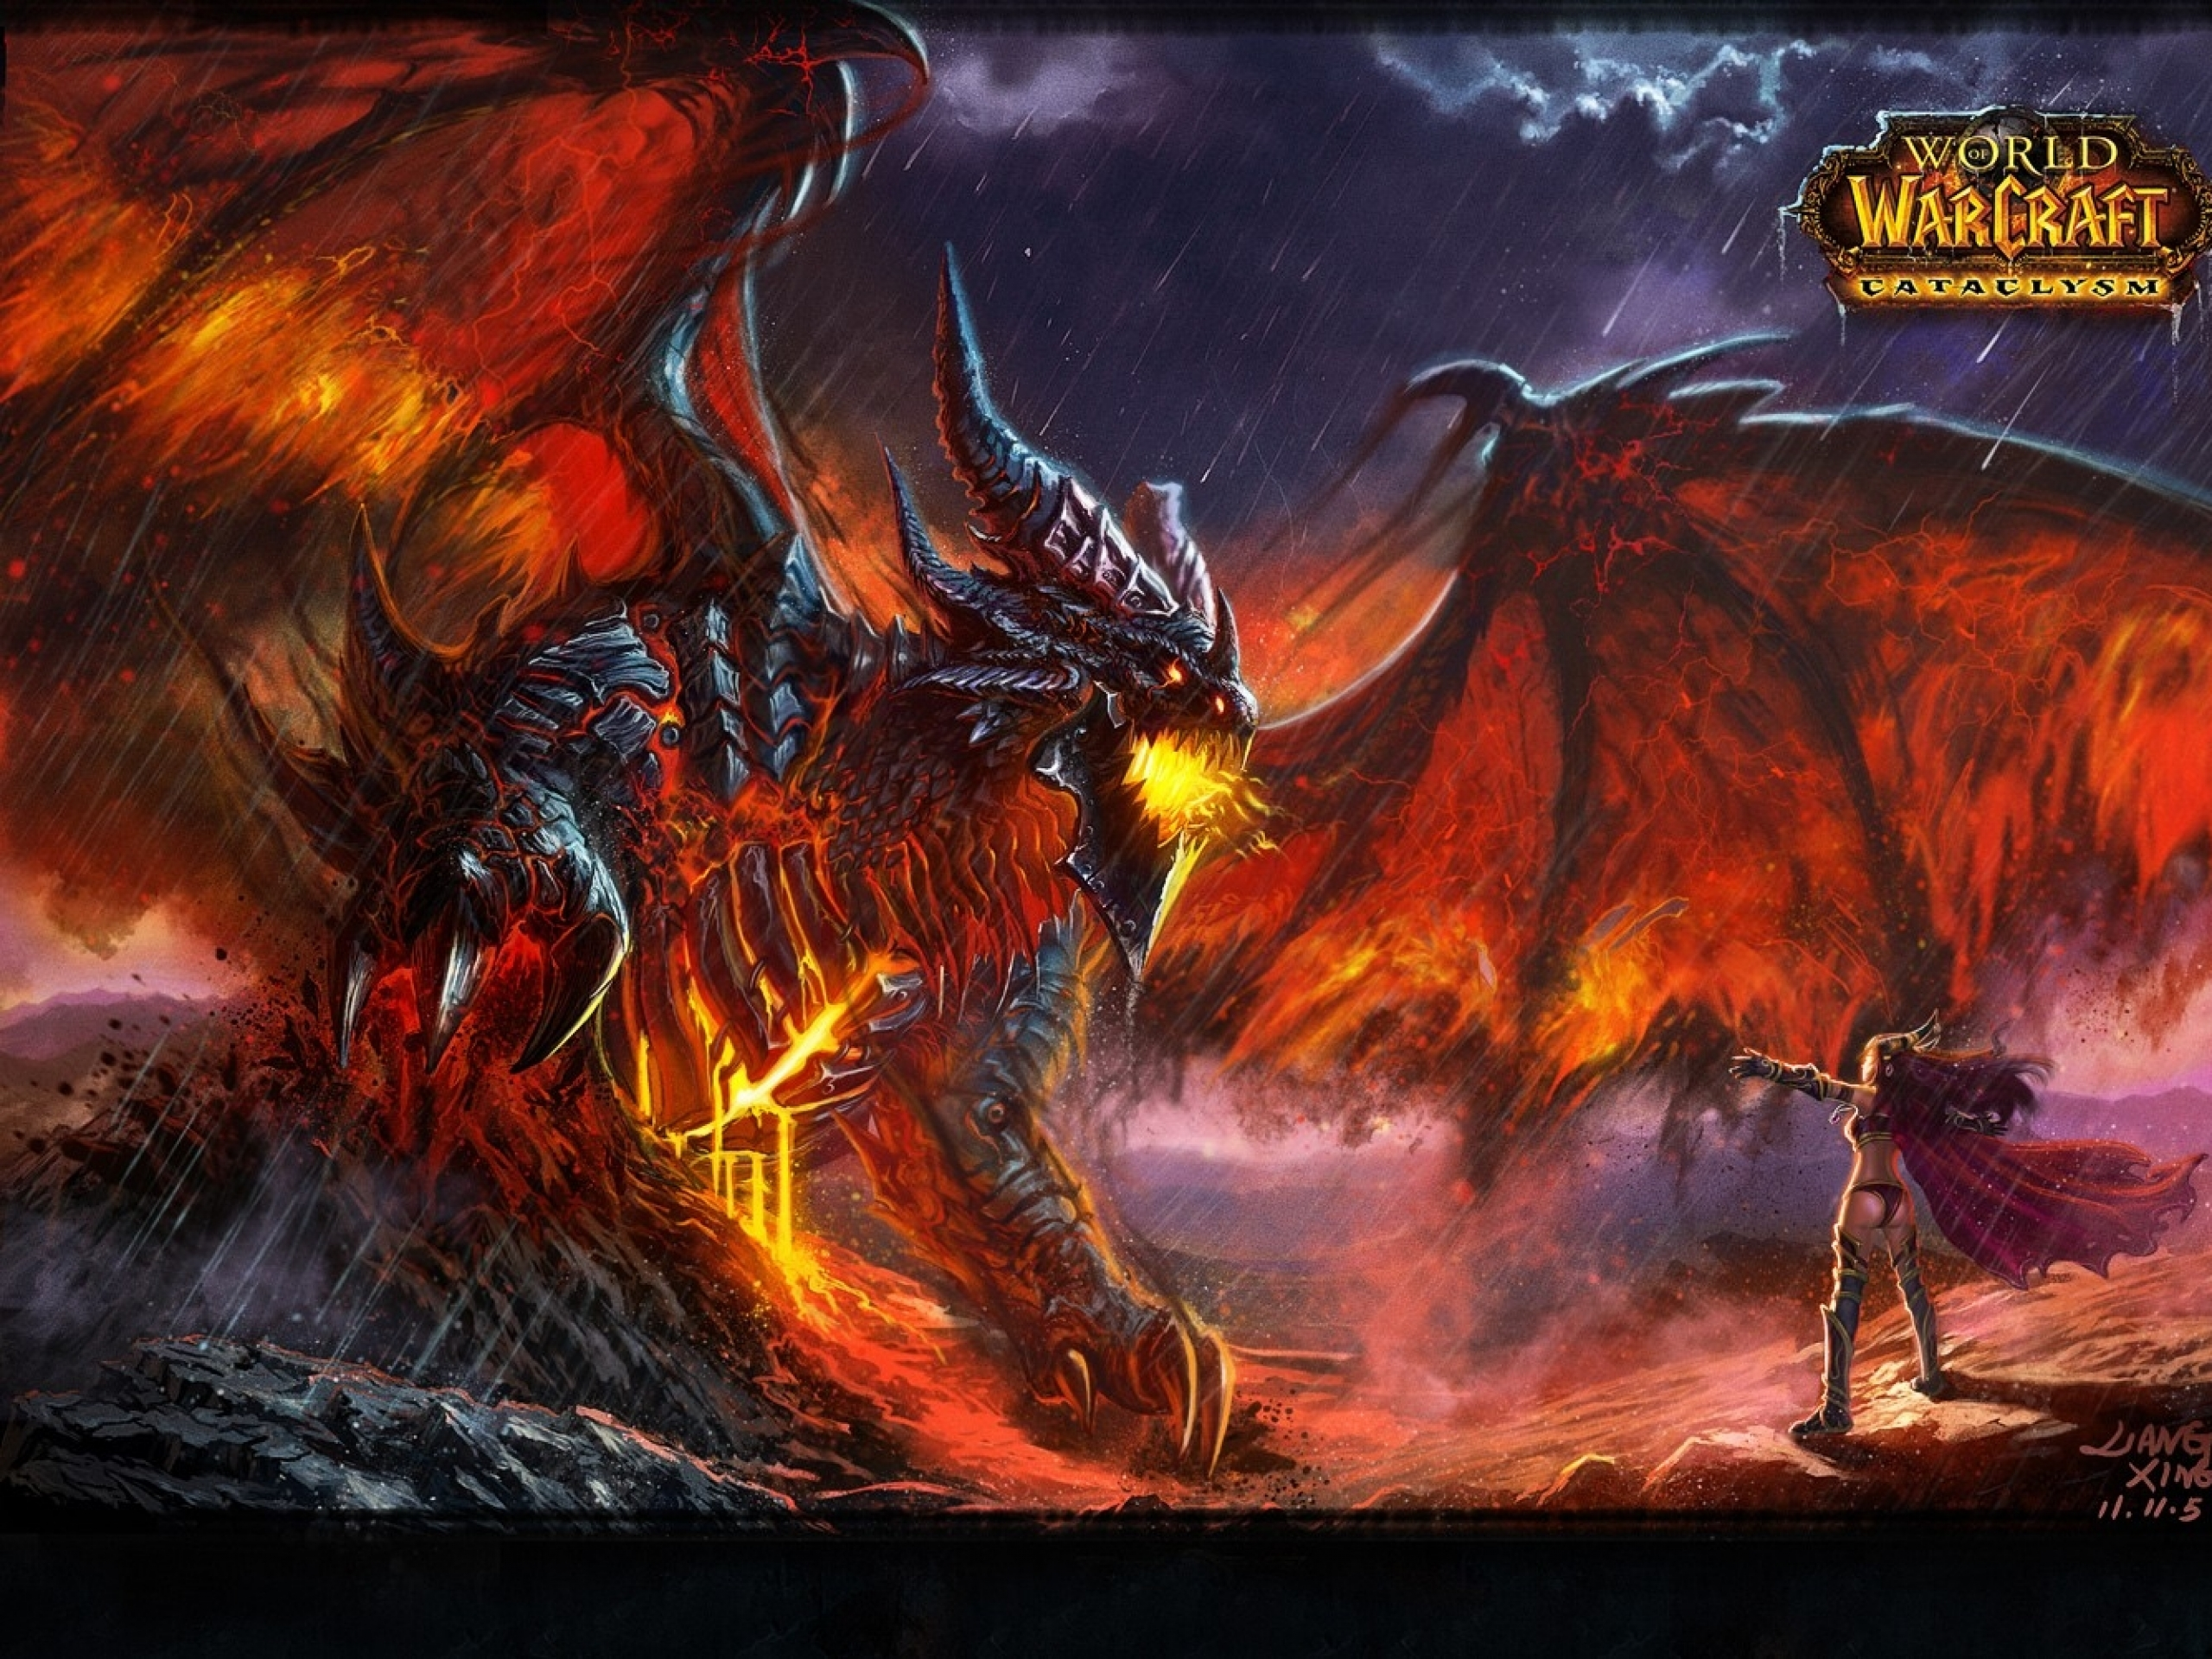 World Of Warcraft Cataclysm Fondo De Pantalla Hd Fondo De